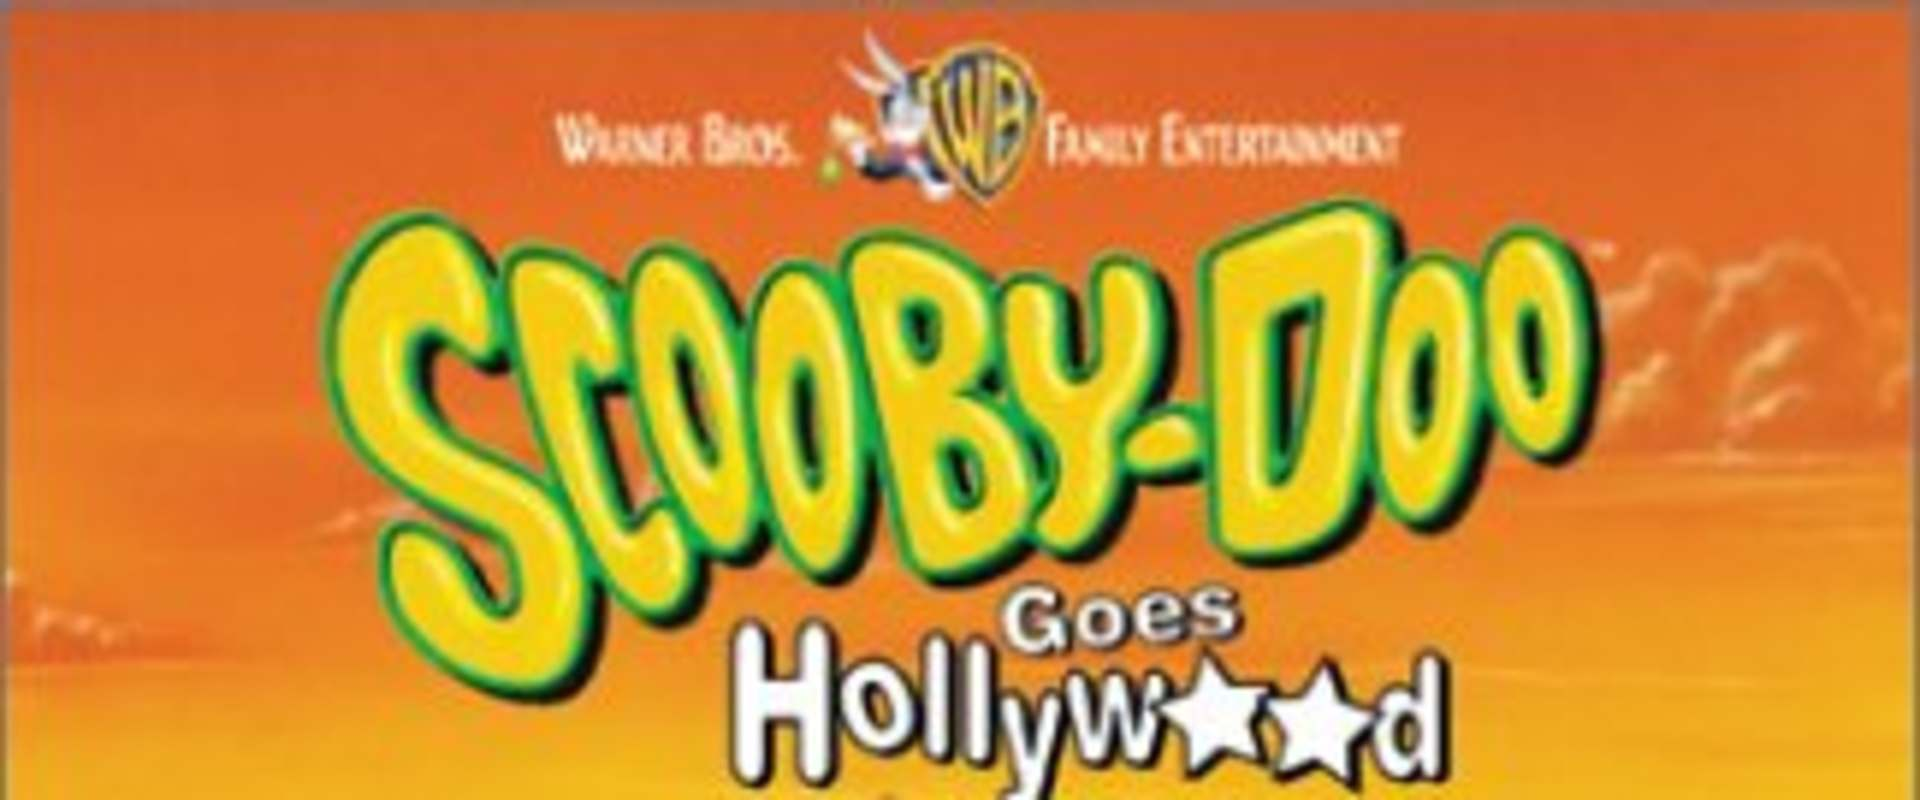 Scooby-Doo Goes Hollywood background 2